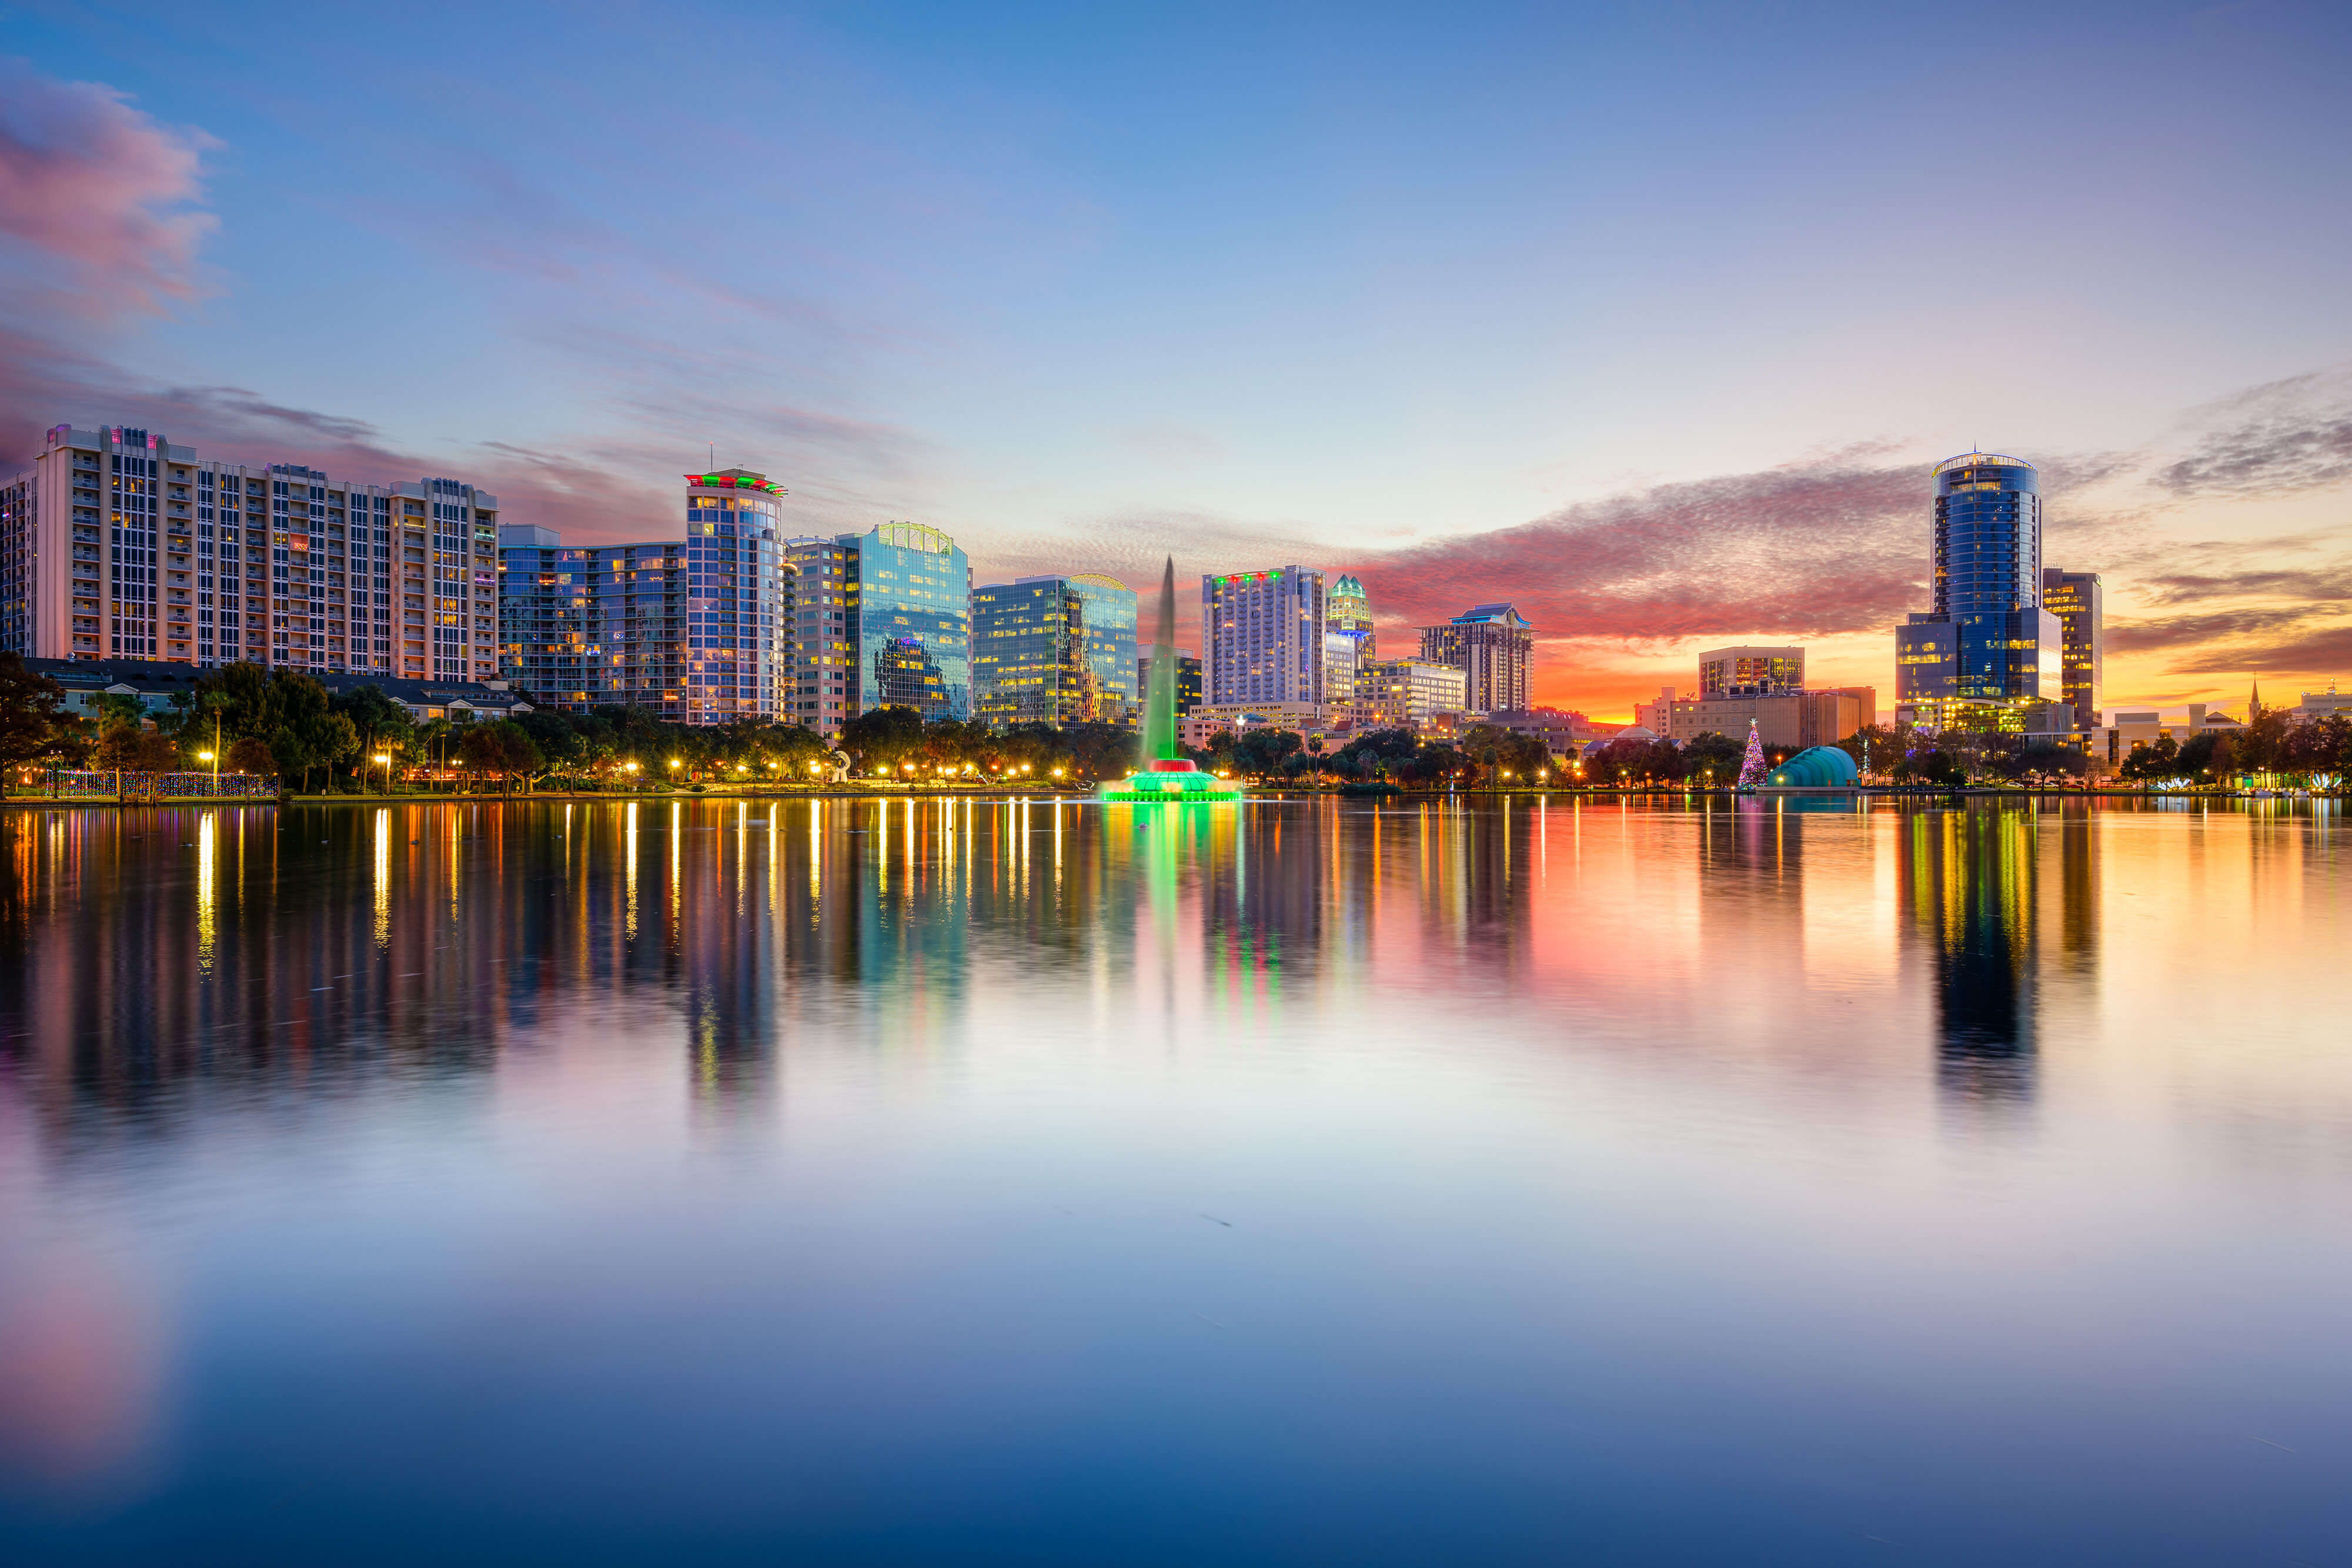 Orlando, Florida | Cheap Easter Weekend Breaks for 2020 | Places to Go Easter Weekend 2020